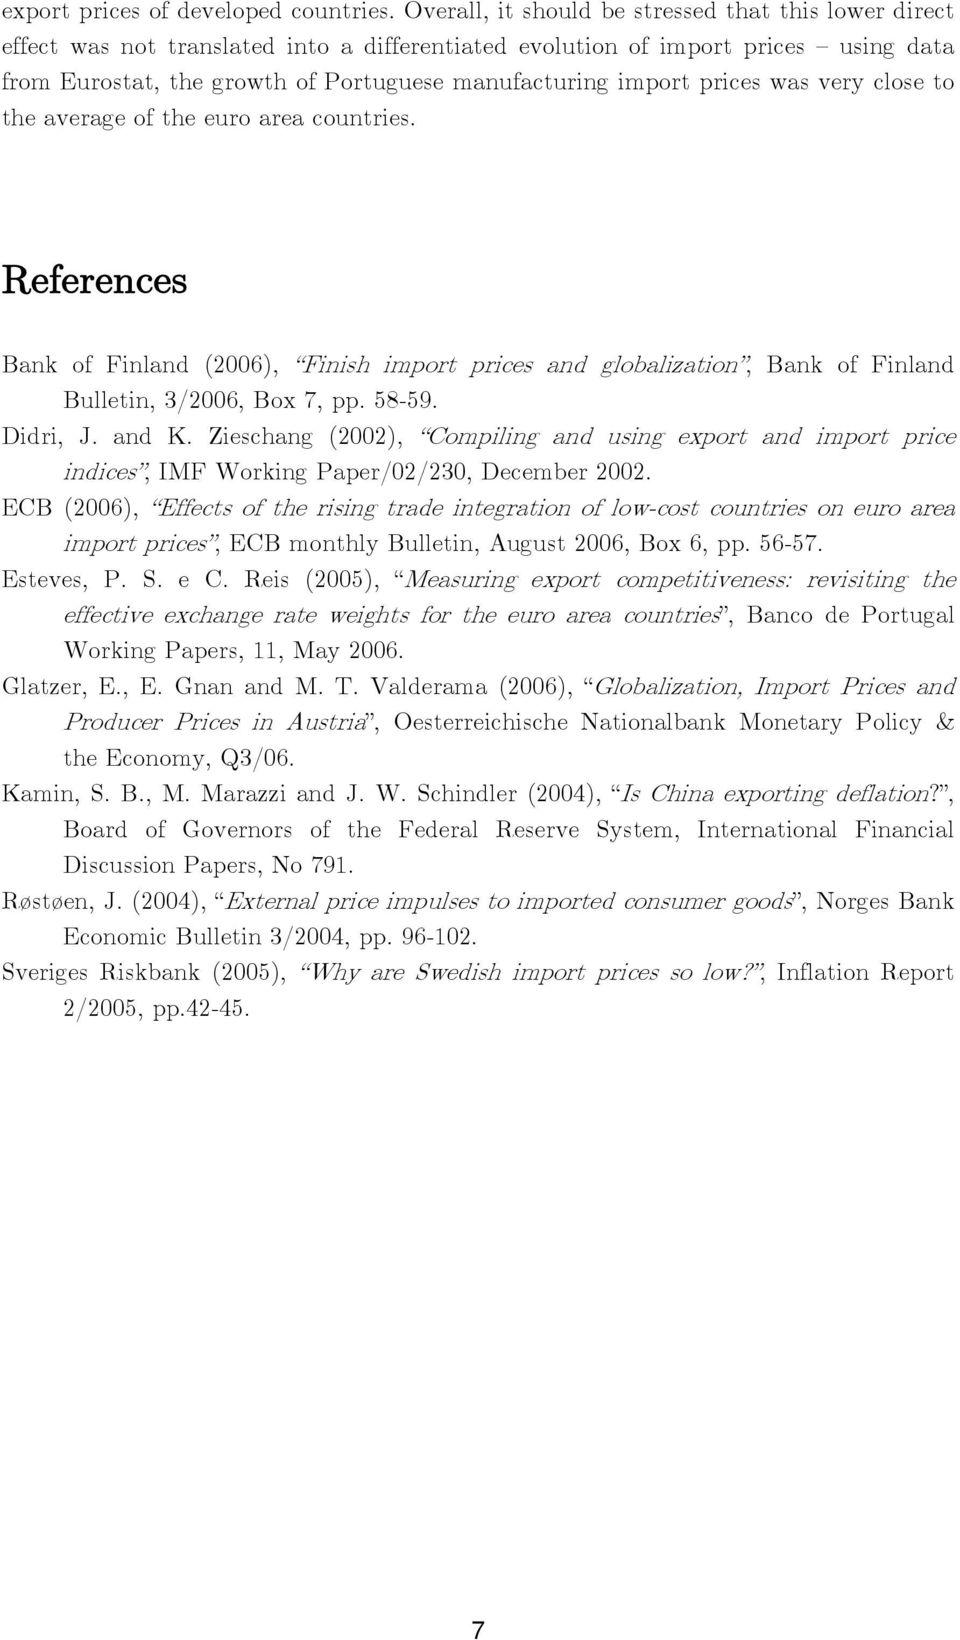 import prices was very close to the average of the euro area countries. References Bank of Finland (2006), Finish import prices and globalization, Bank of Finland Bulletin, 3/2006, Box 7, pp. 58-59.